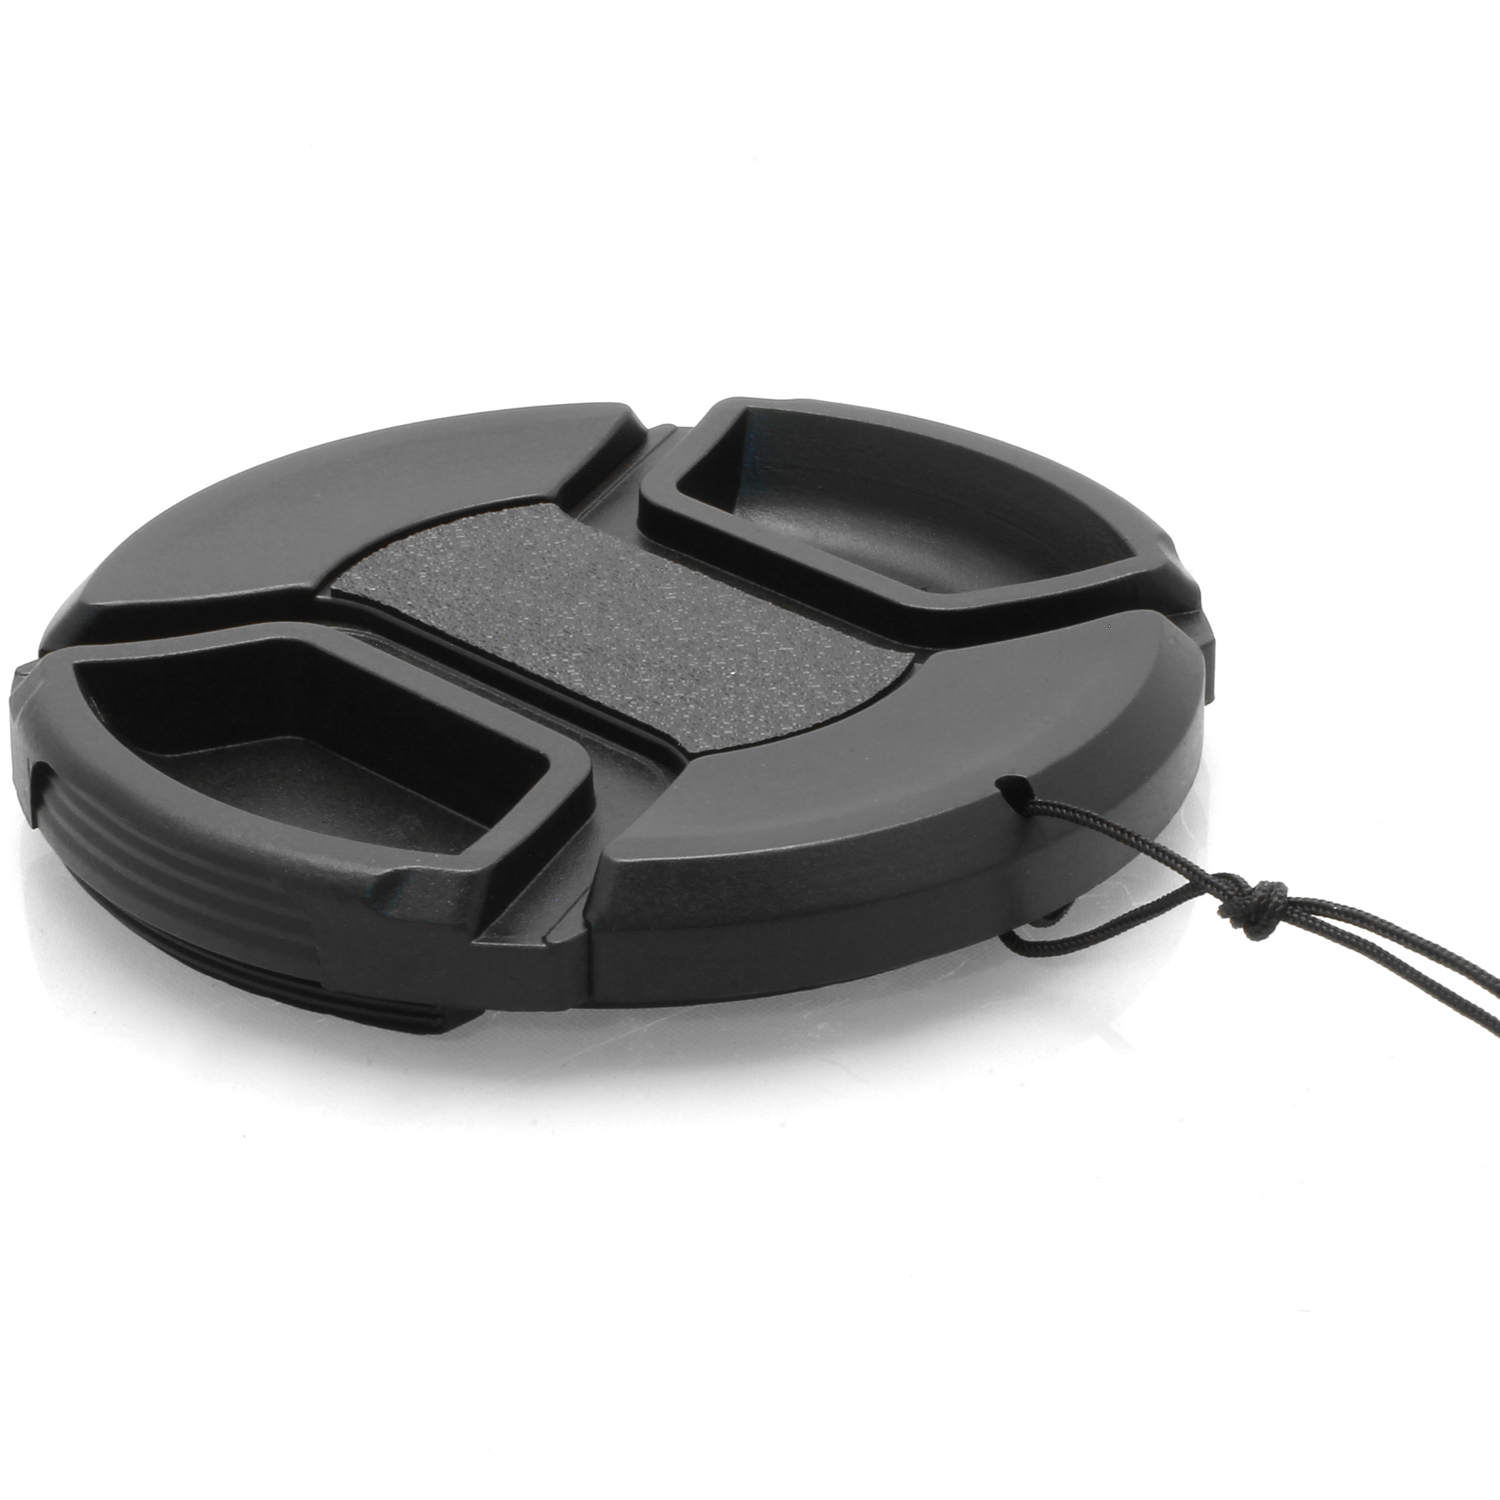 iGadgitz Xtra 37mm Centre Pinch Snap-On Lens Hood Cap Cover with Cord for SLR & DSLR Cameras